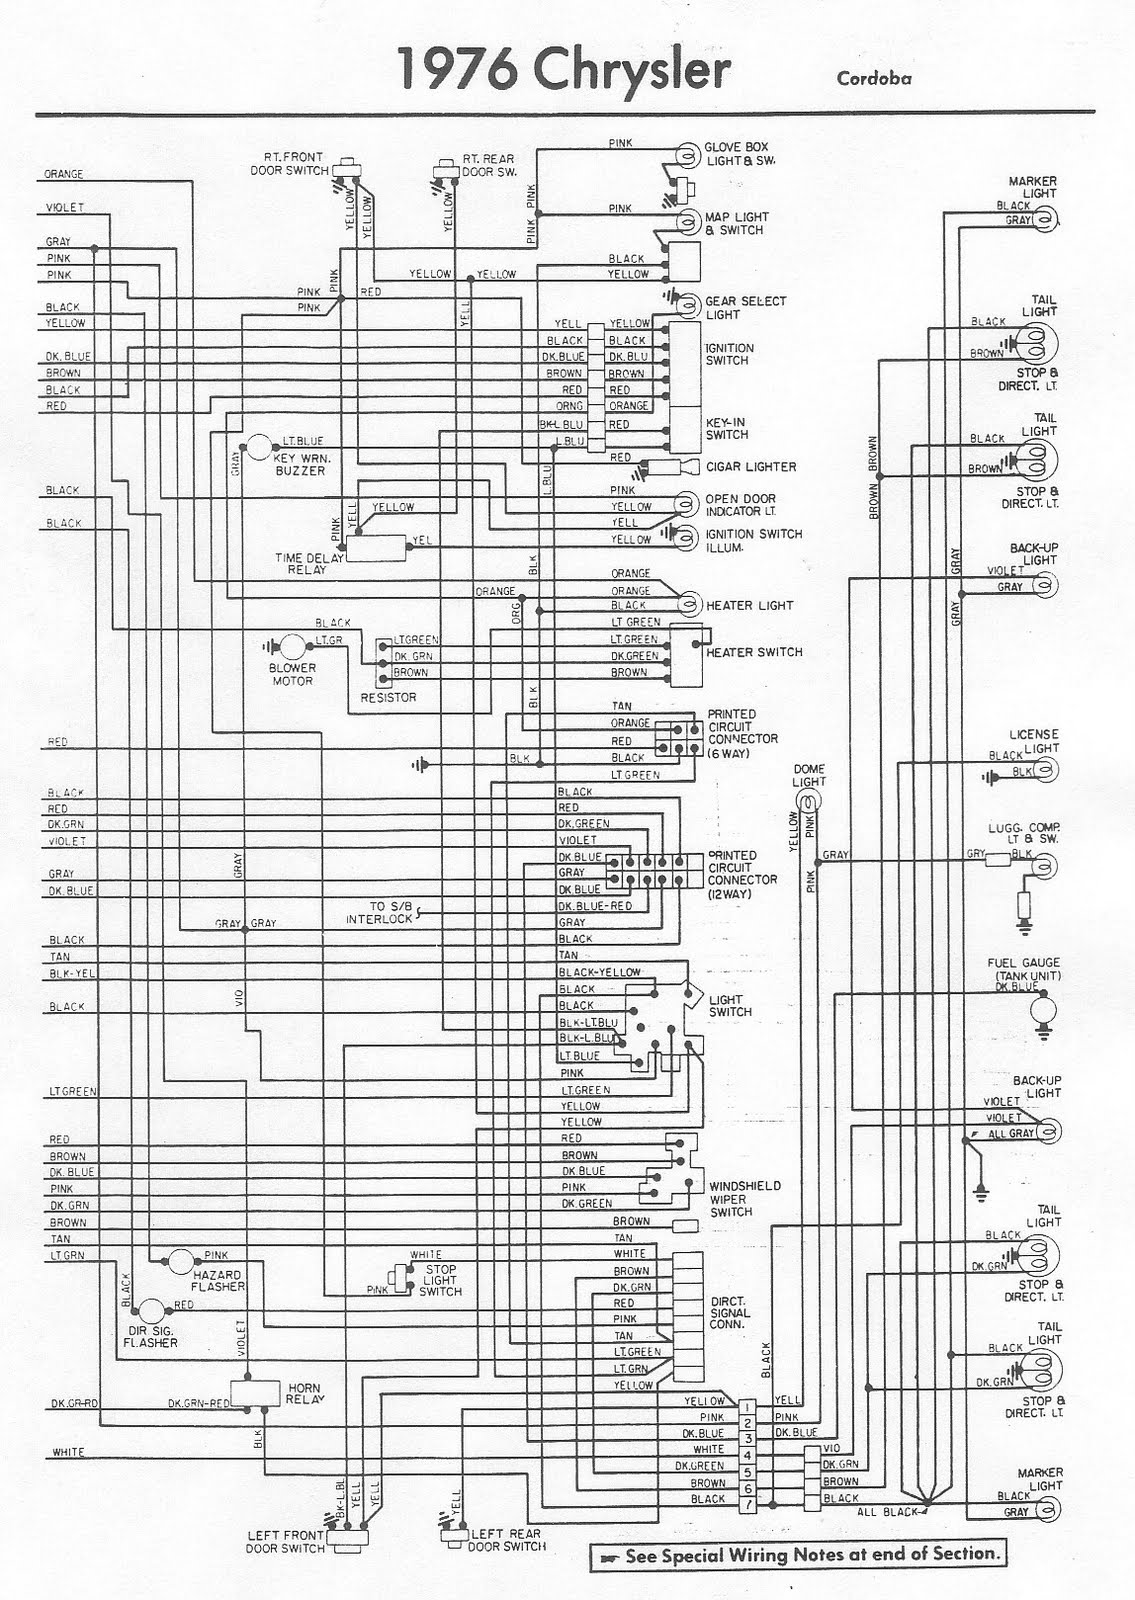 Free Auto Wiring Diagram For 1961 Ford Comet And Falcon 6 All Models 1976 Chrysler Cordoba Rear Side